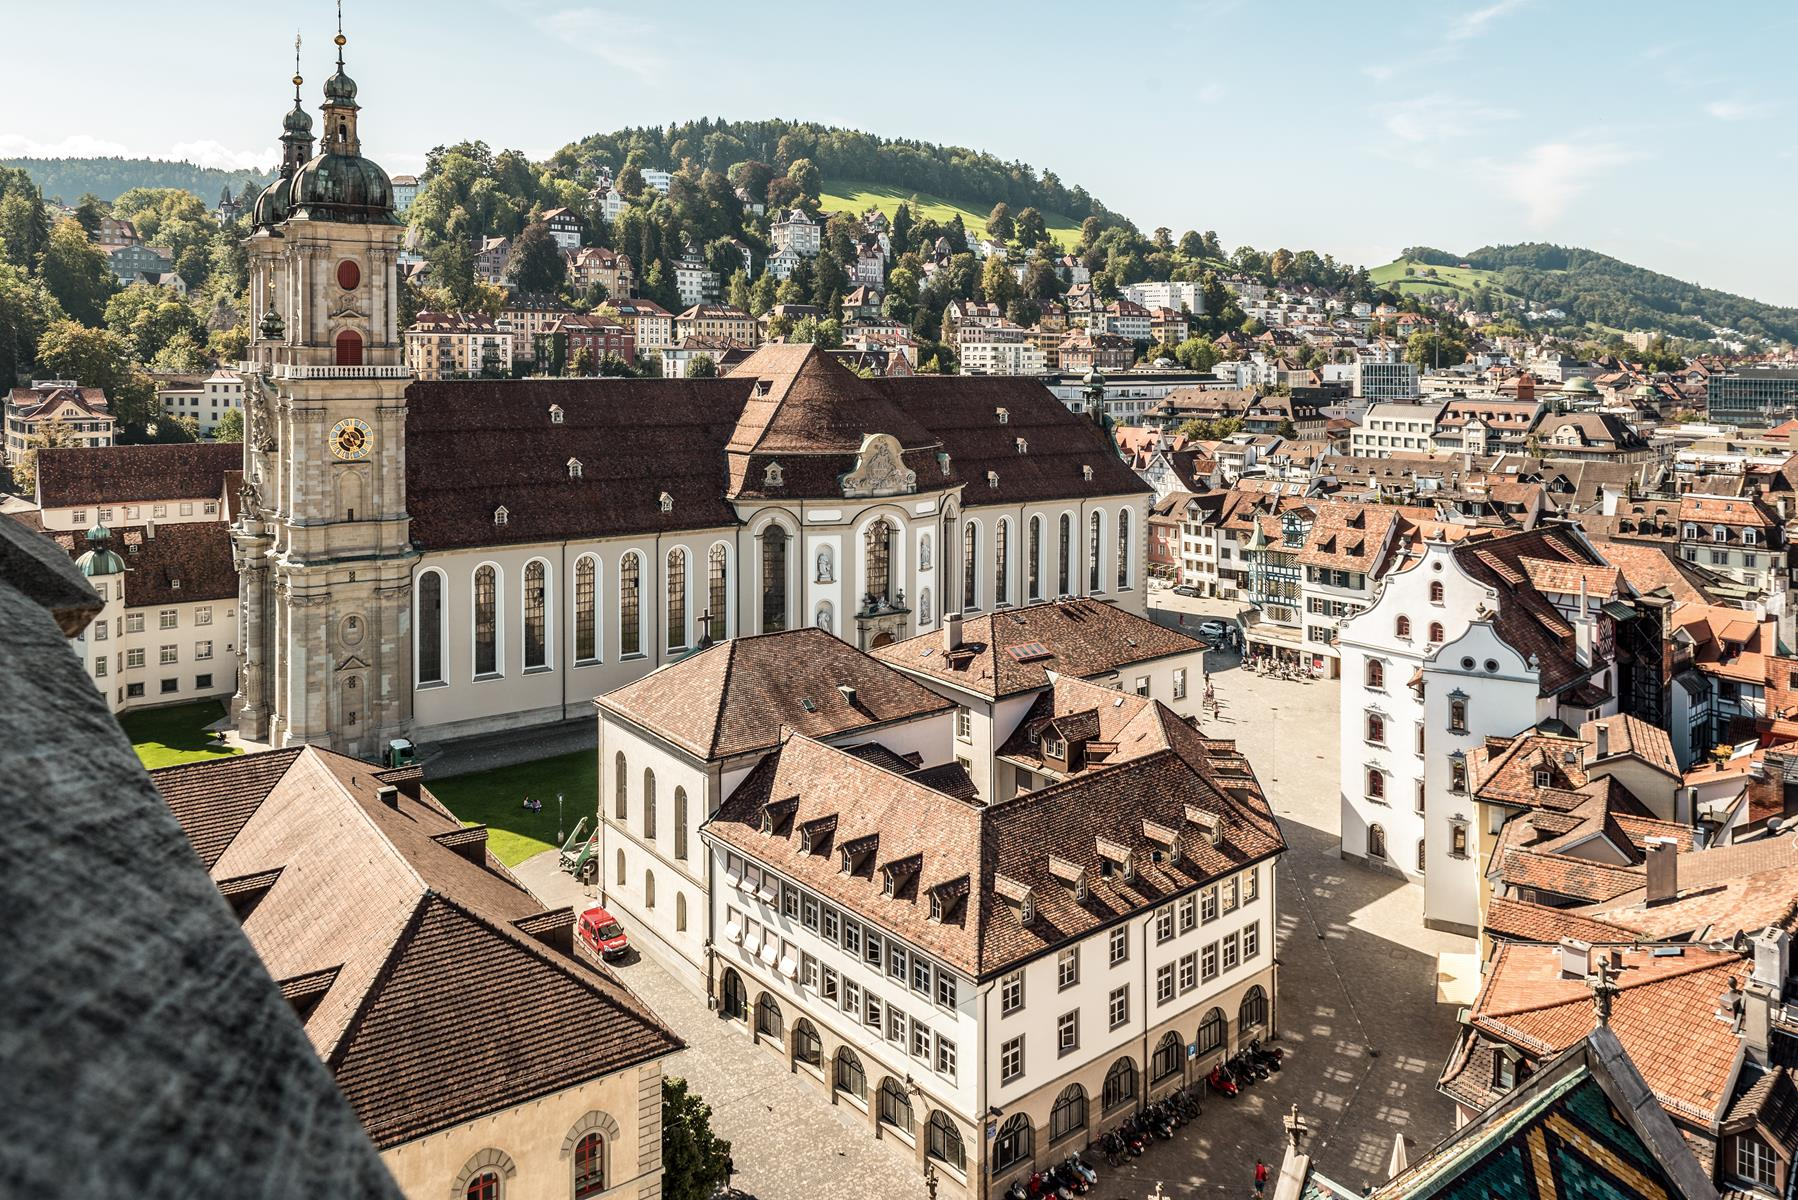 St. Gallen's twin-tower Baroque cathedral is part of its famous Abbey District. - Switzerland Tourism